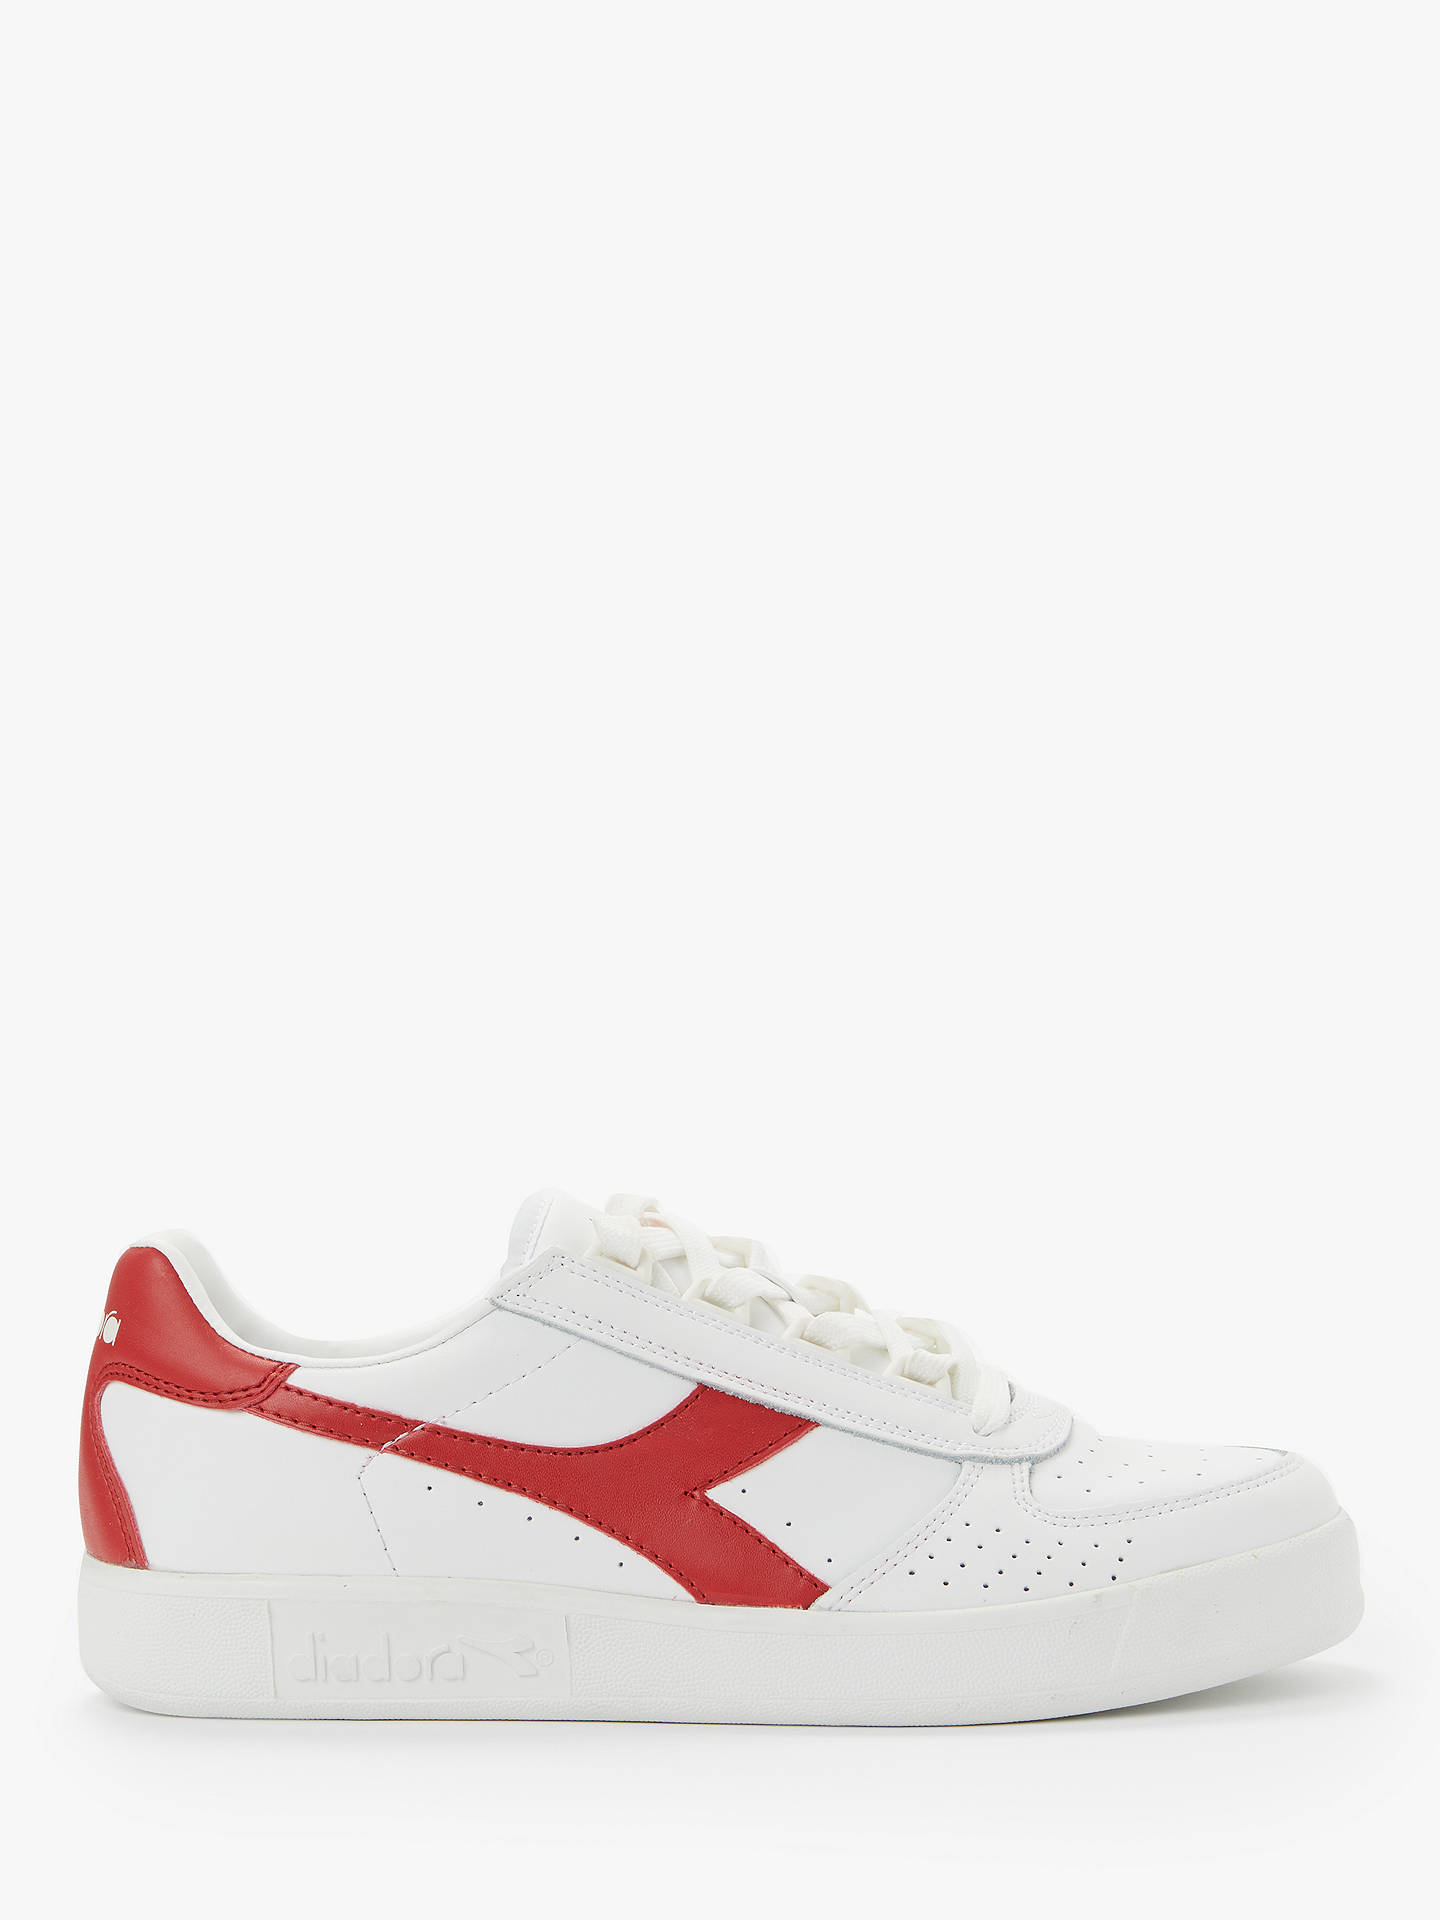 e176166b13 Diadora B.Elite Leather Trainers, White/Ferrari Red